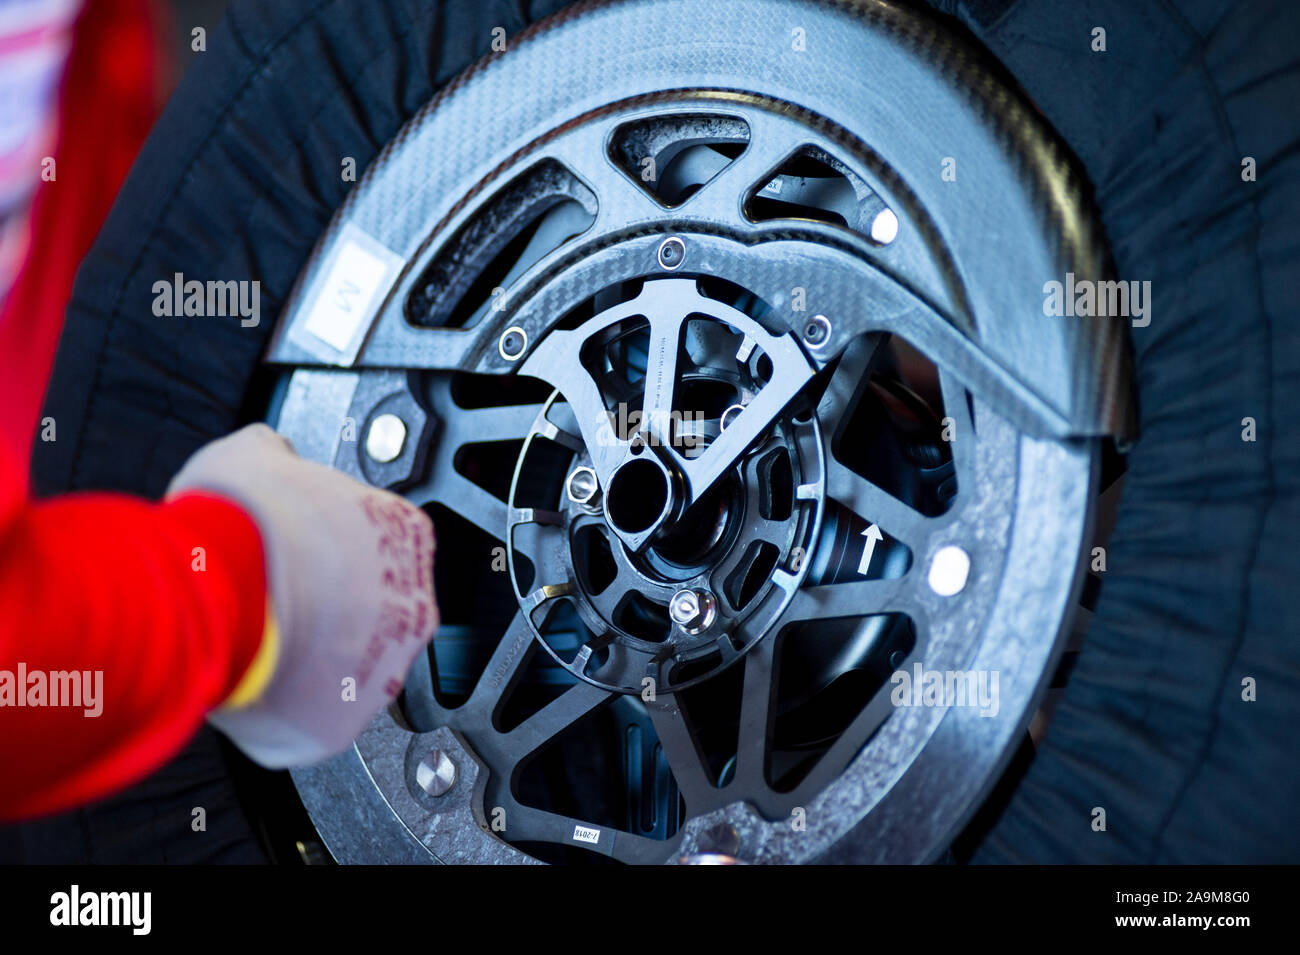 Motogp Bike High Resolution Stock Photography And Images Alamy